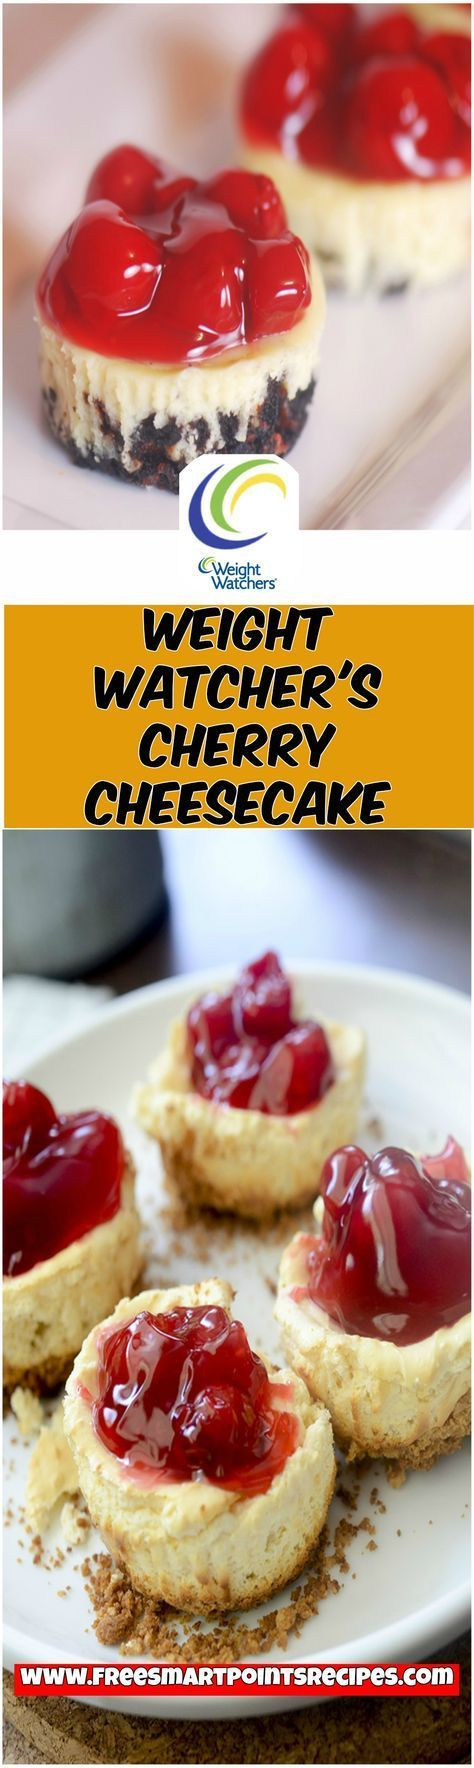 Weight Watchers Dessert Recipes With Cool Whip  Weight Watcher's Cherry Cheesecake weight watchers recipes